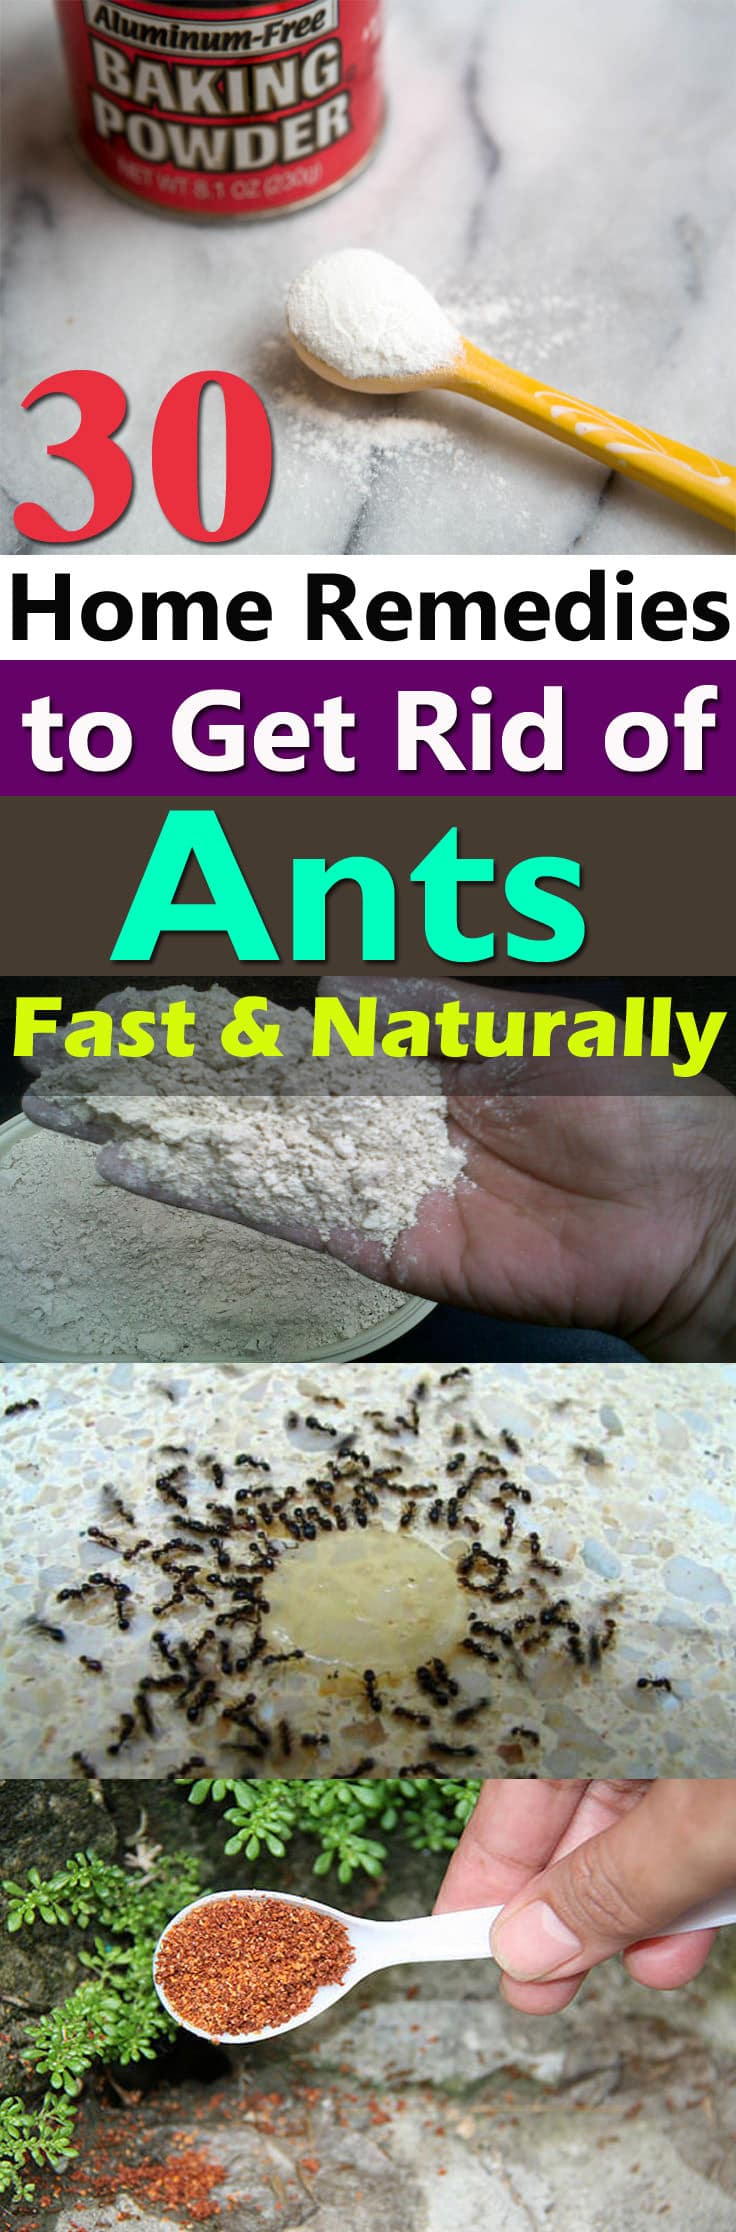 30 Natural Home Remedies To Get Rid Of Ants From Home Garden Balcony Garden Web